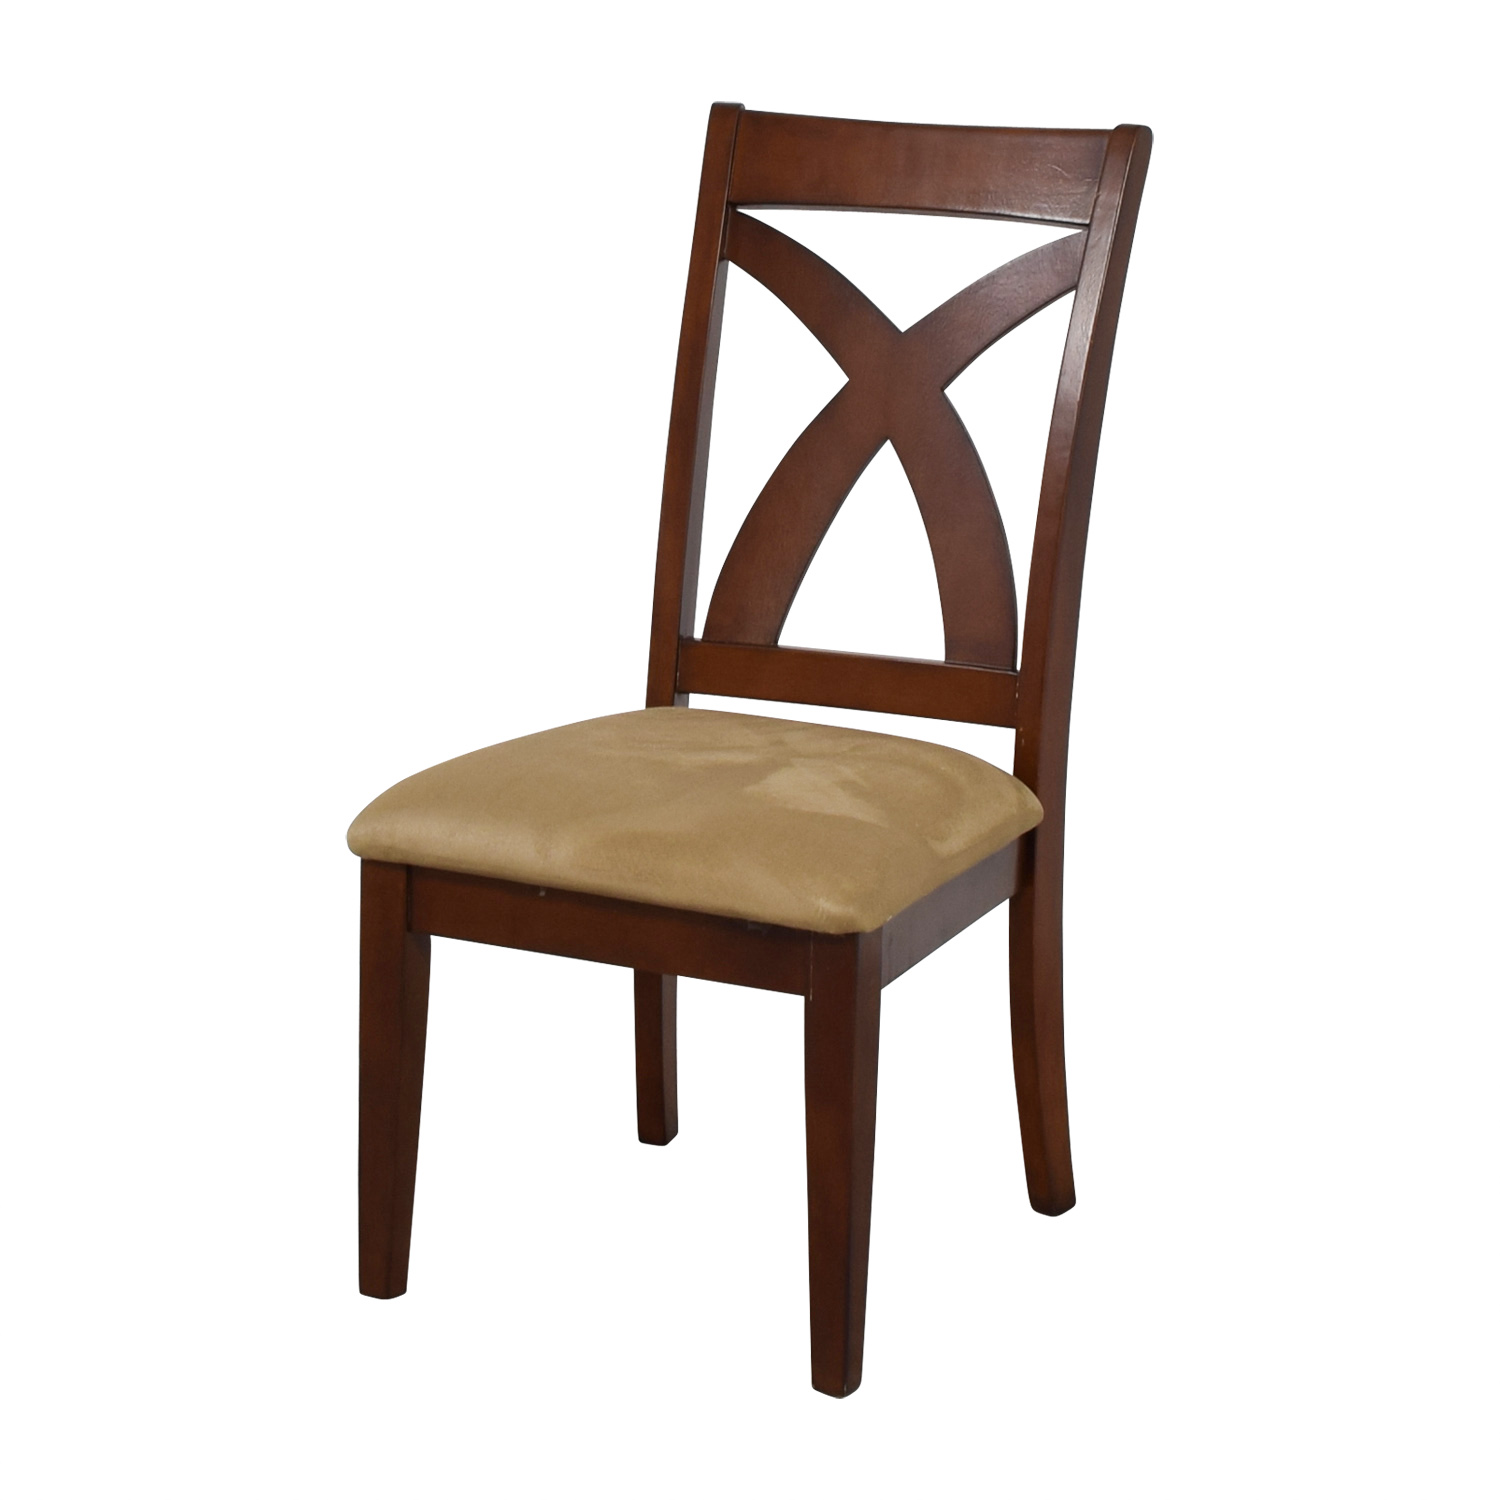 Cross Back Wood Chair with Padded Seat on sale